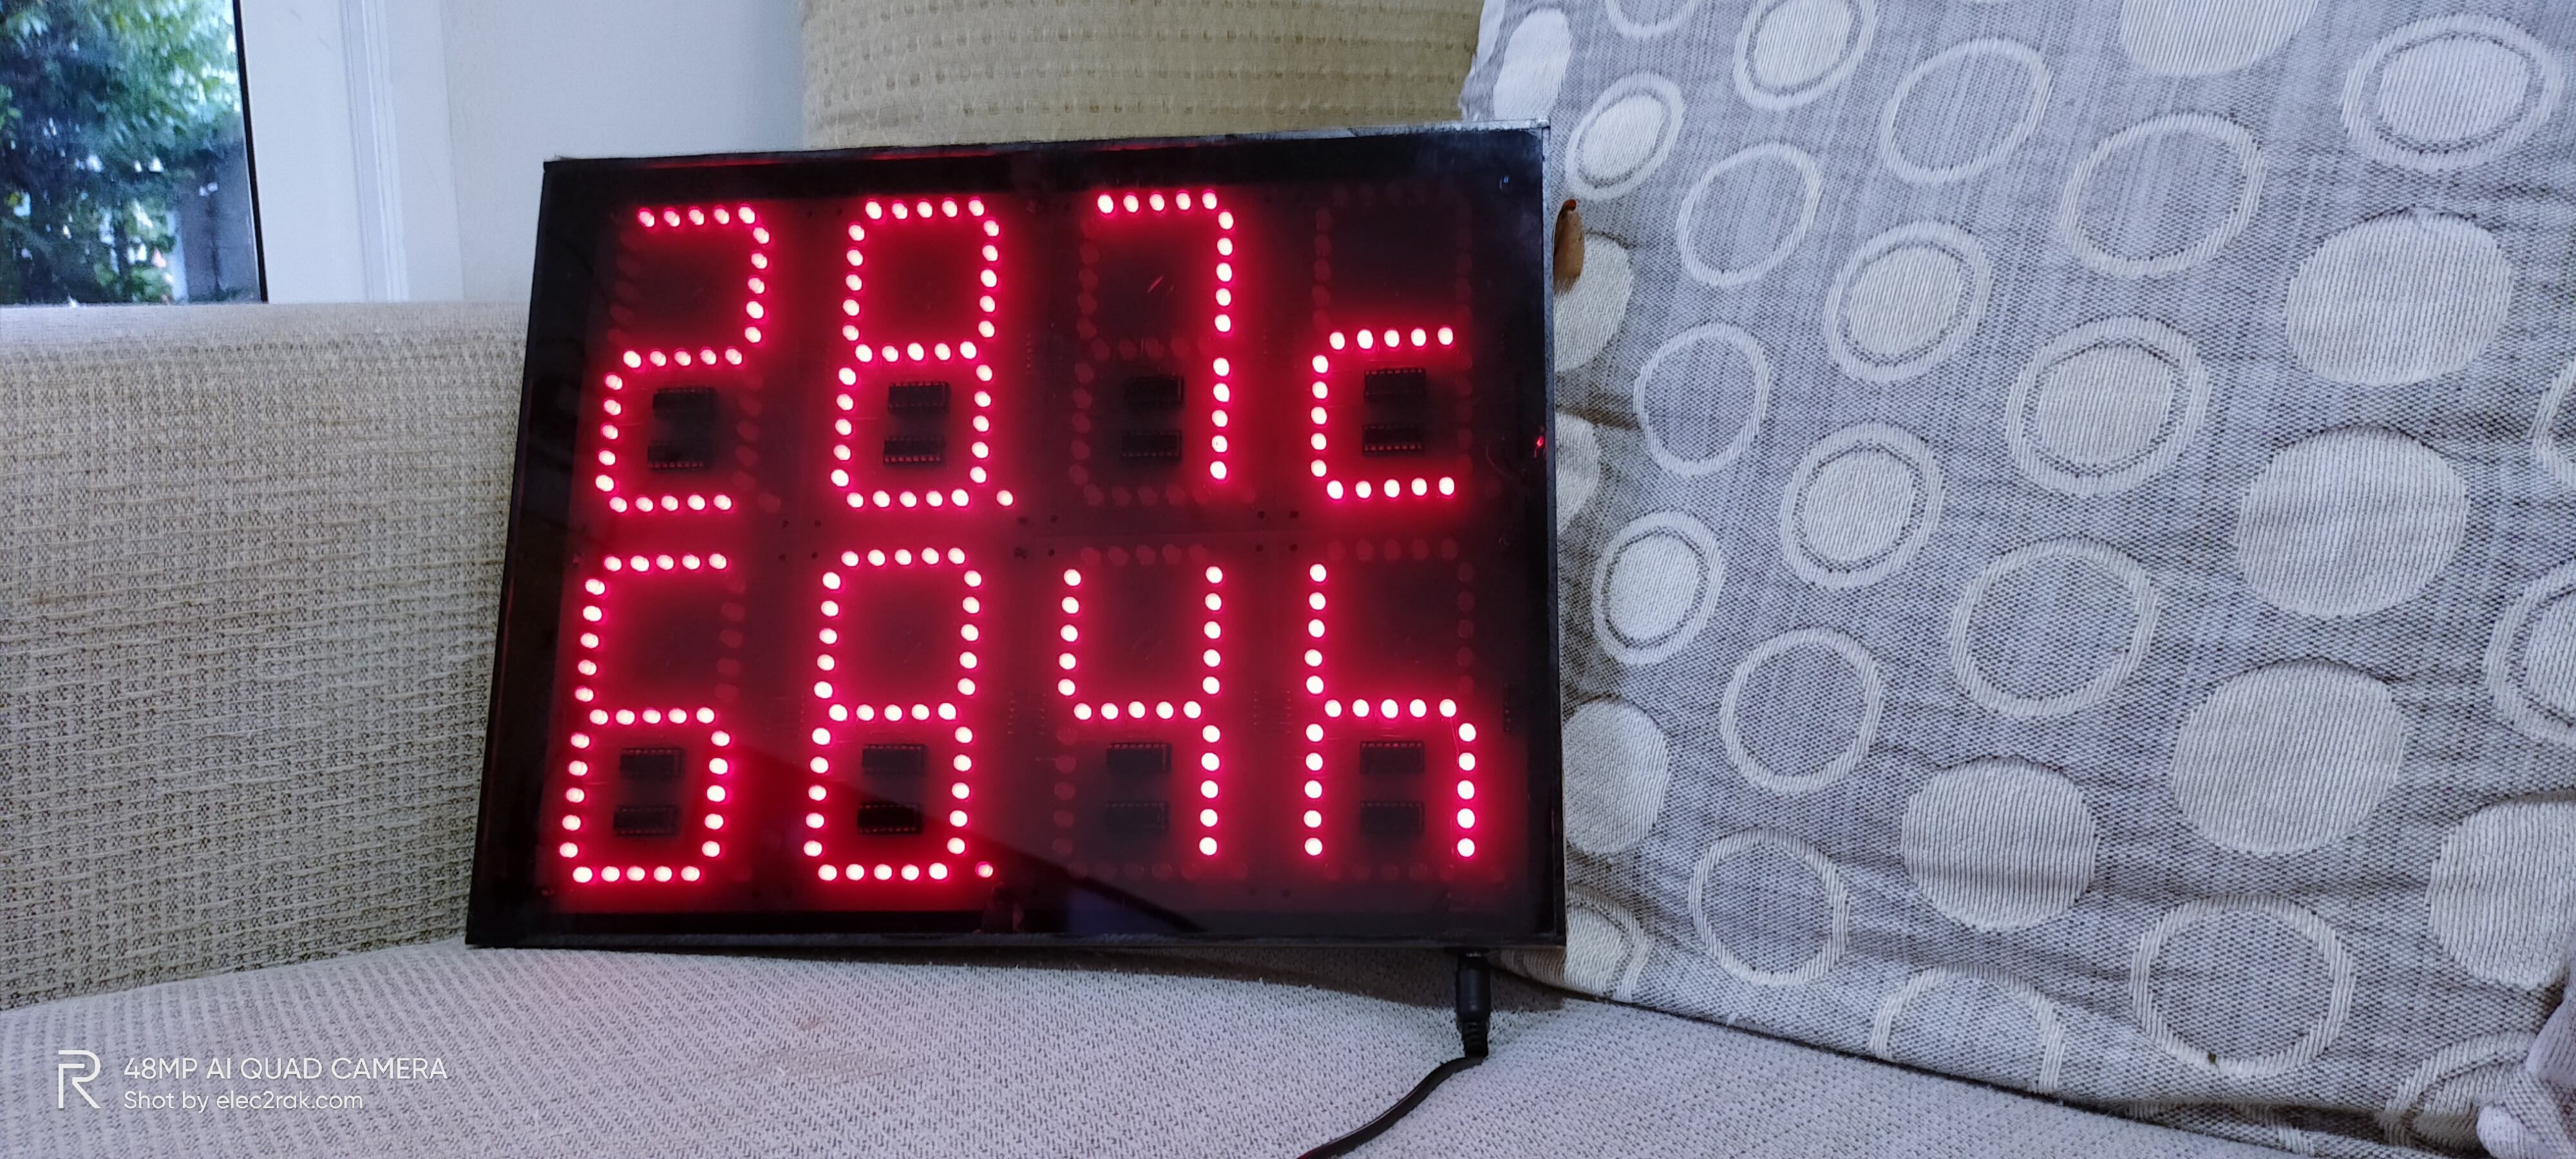 Temperature and Humidity Monitoring Display Board with Wireless Sensor